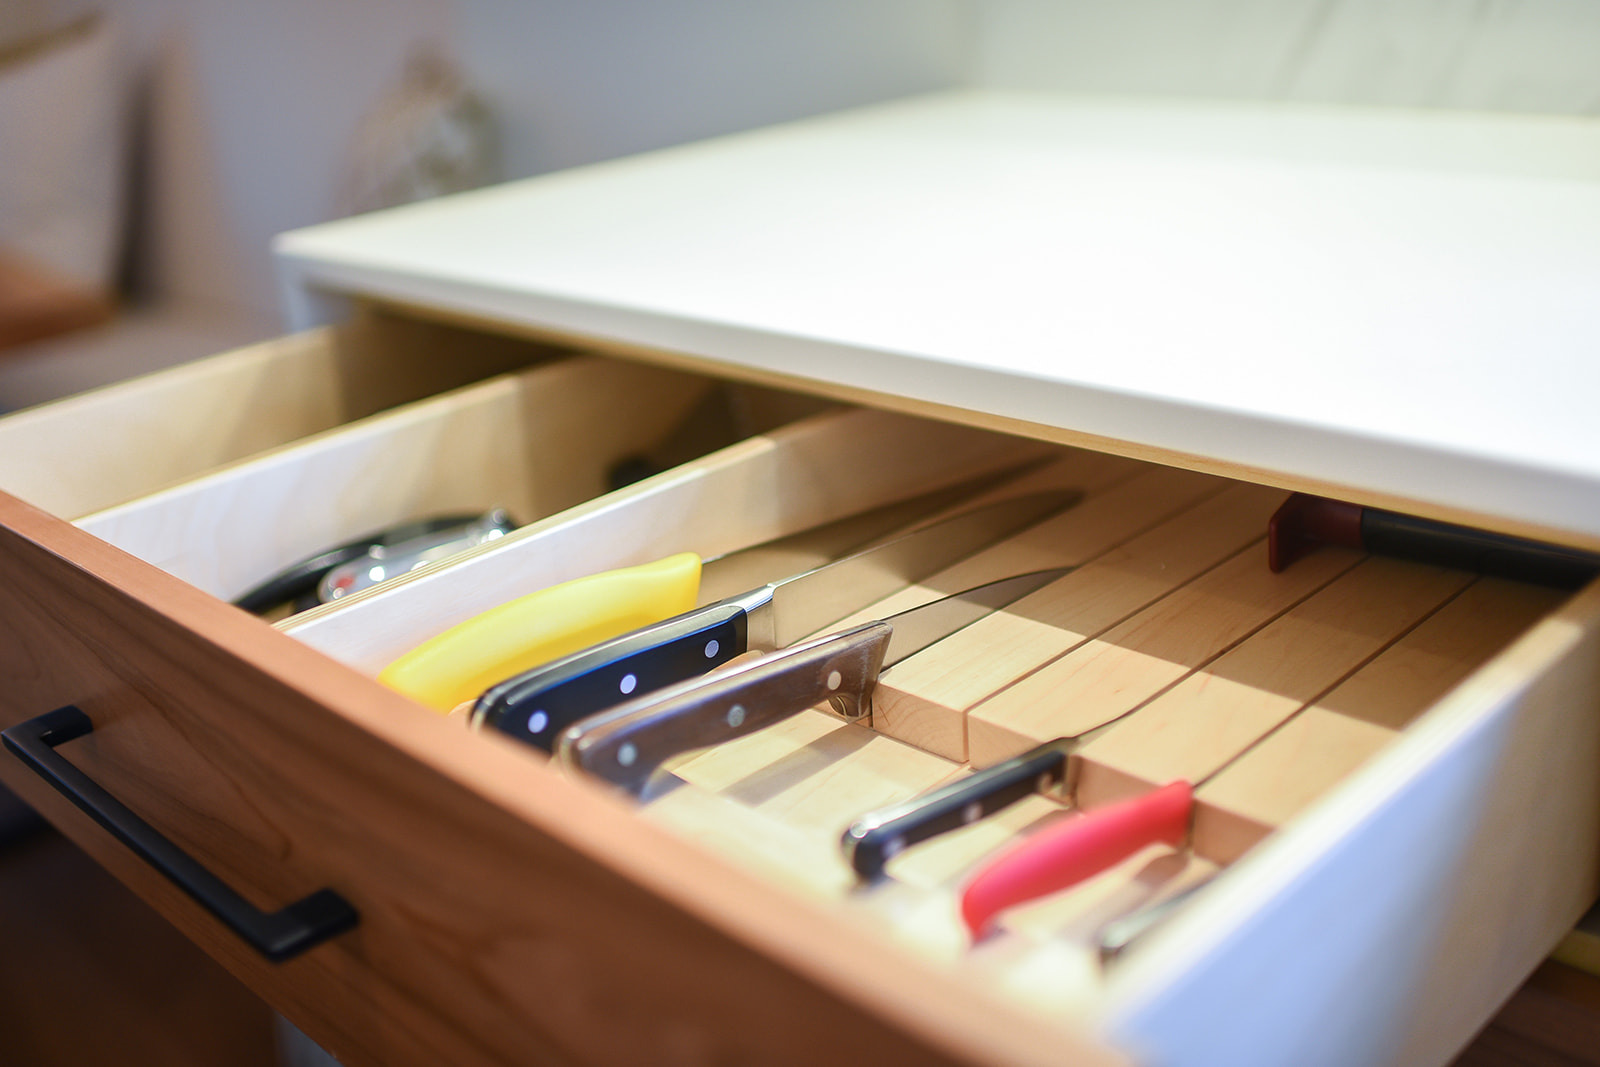 Knife inserts built into the drawer.